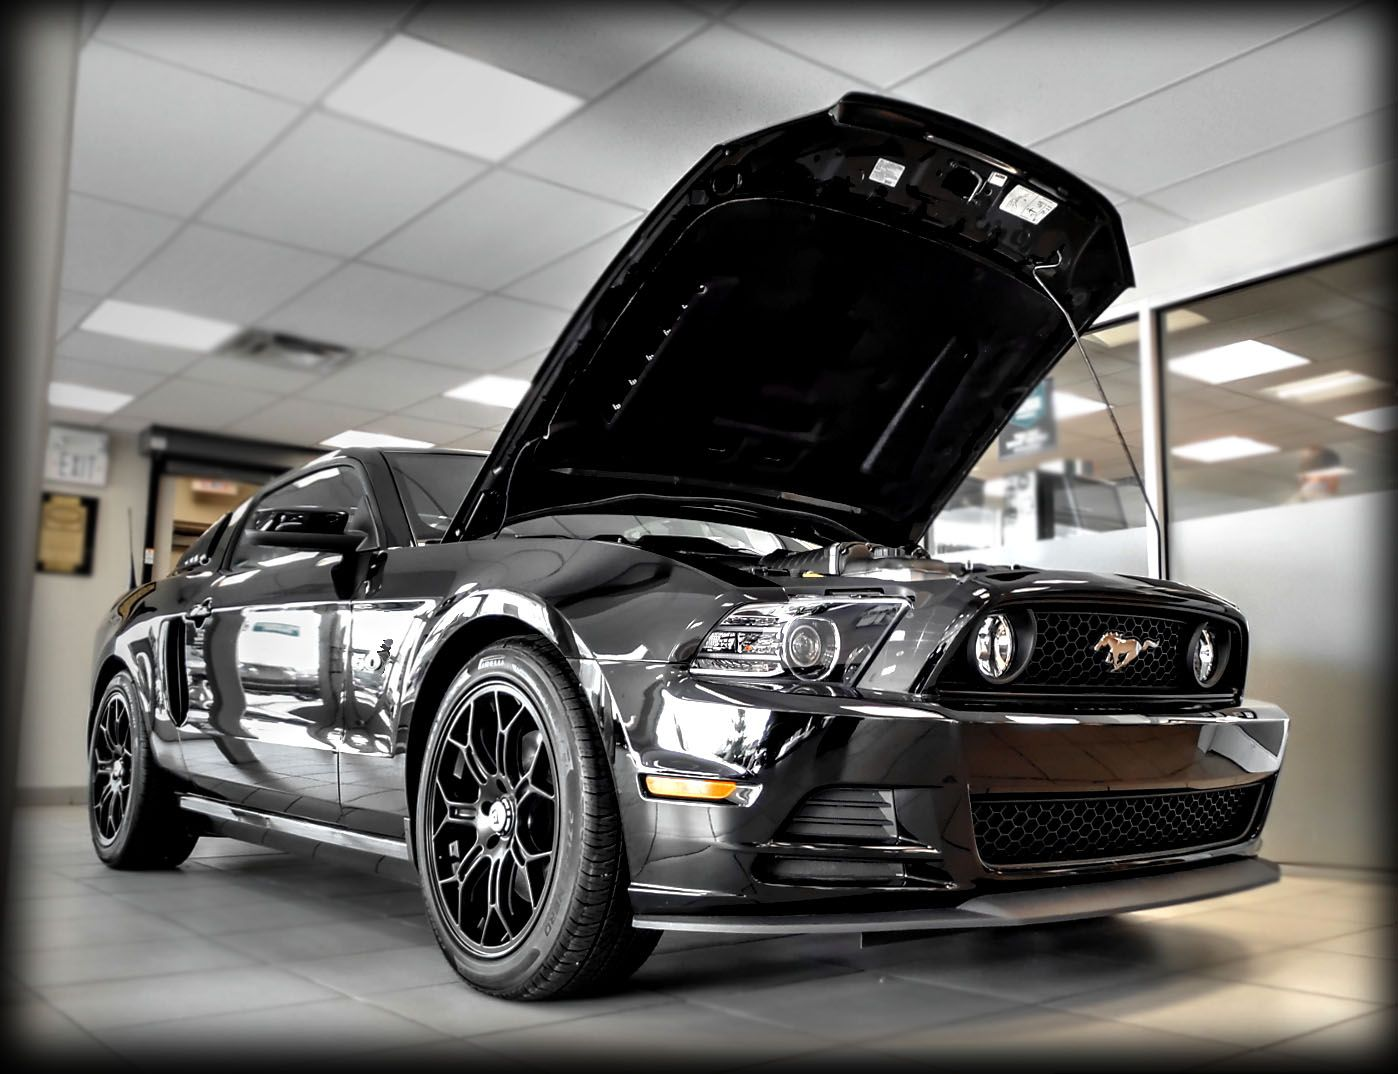 Modified Kentwood Kustoms 2014 Roush Powered Ford Mustang Gt